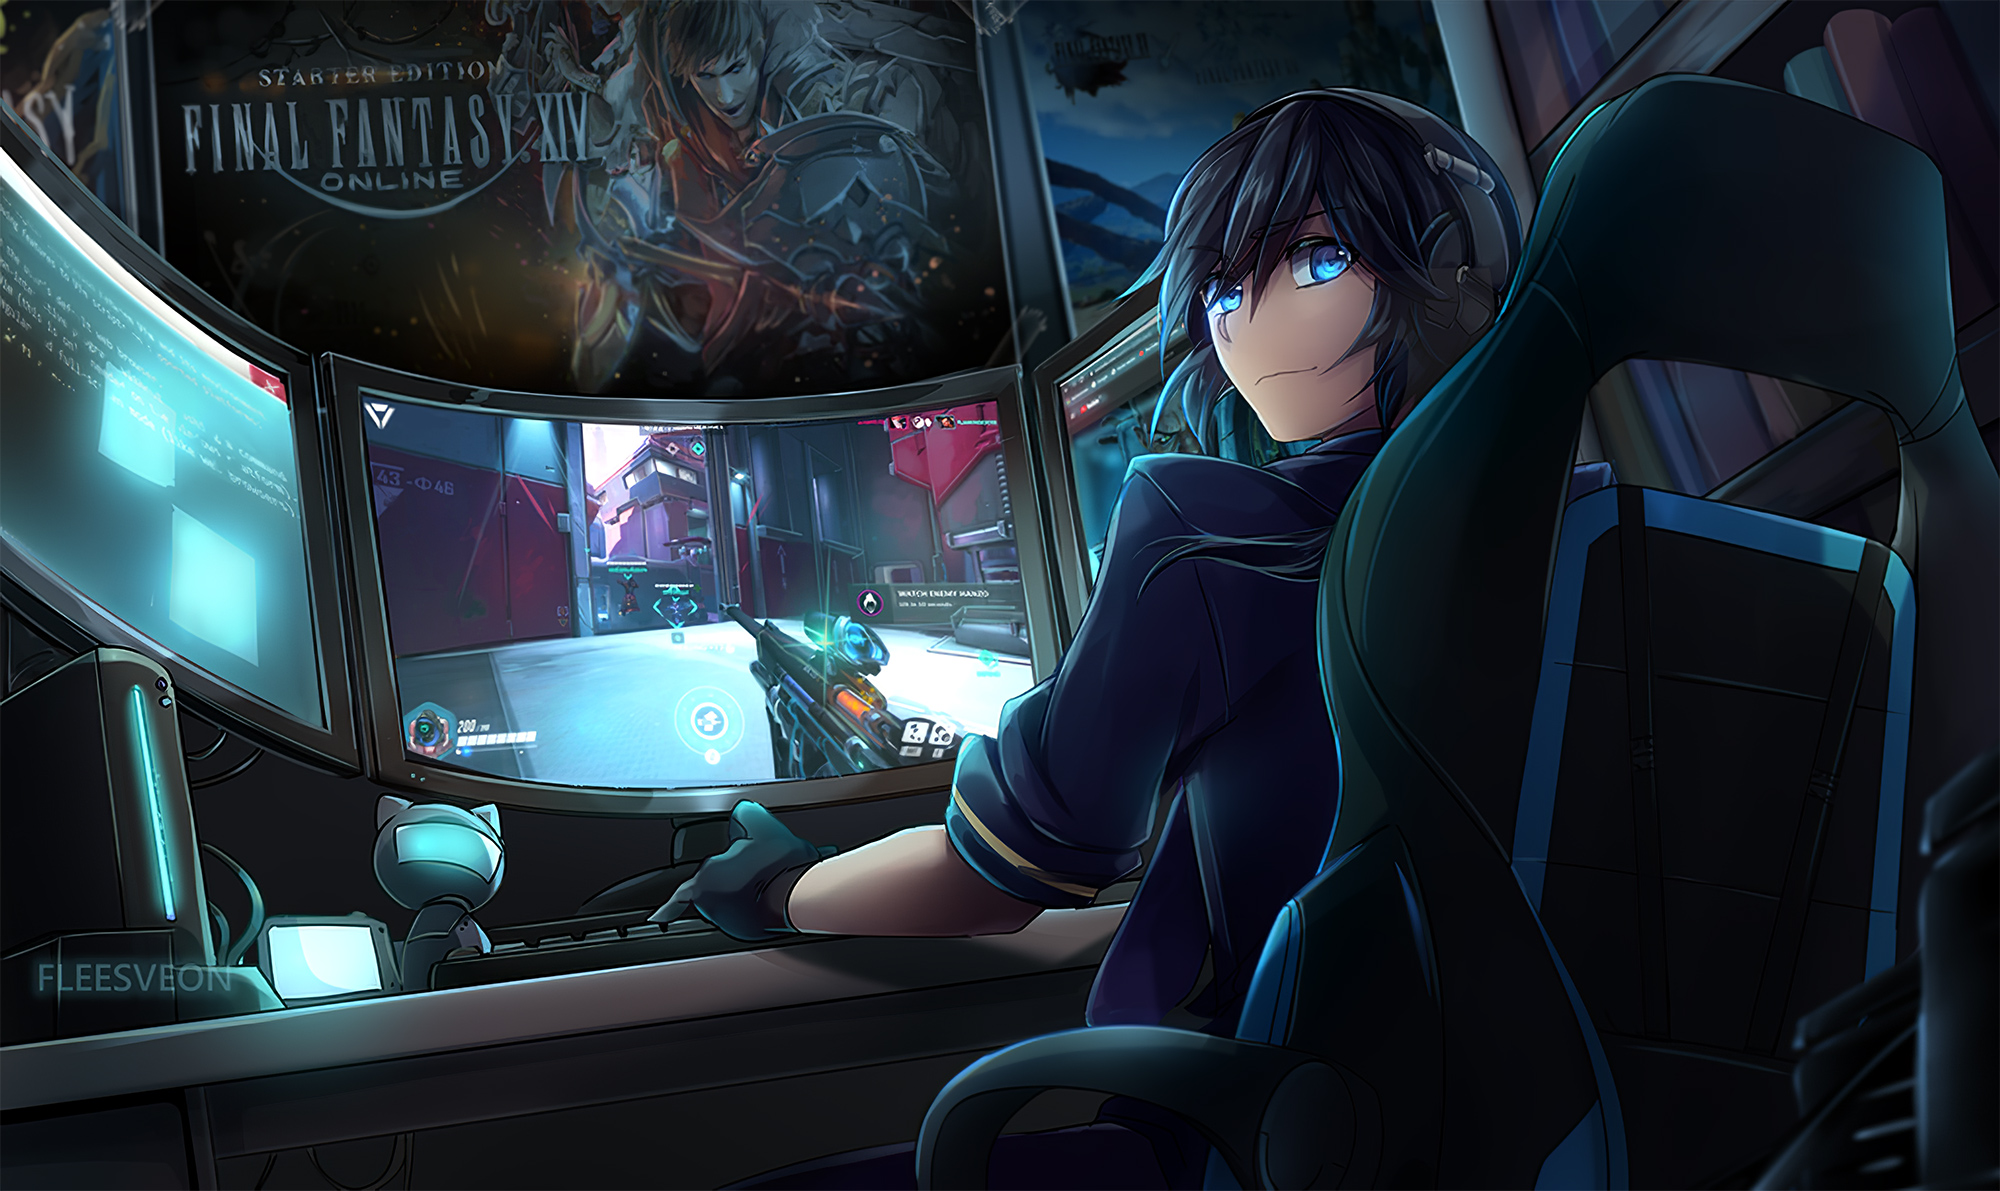 Anime Gaming Boy Hd Anime 4k Wallpapers Images Backgrounds Photos And Pictures